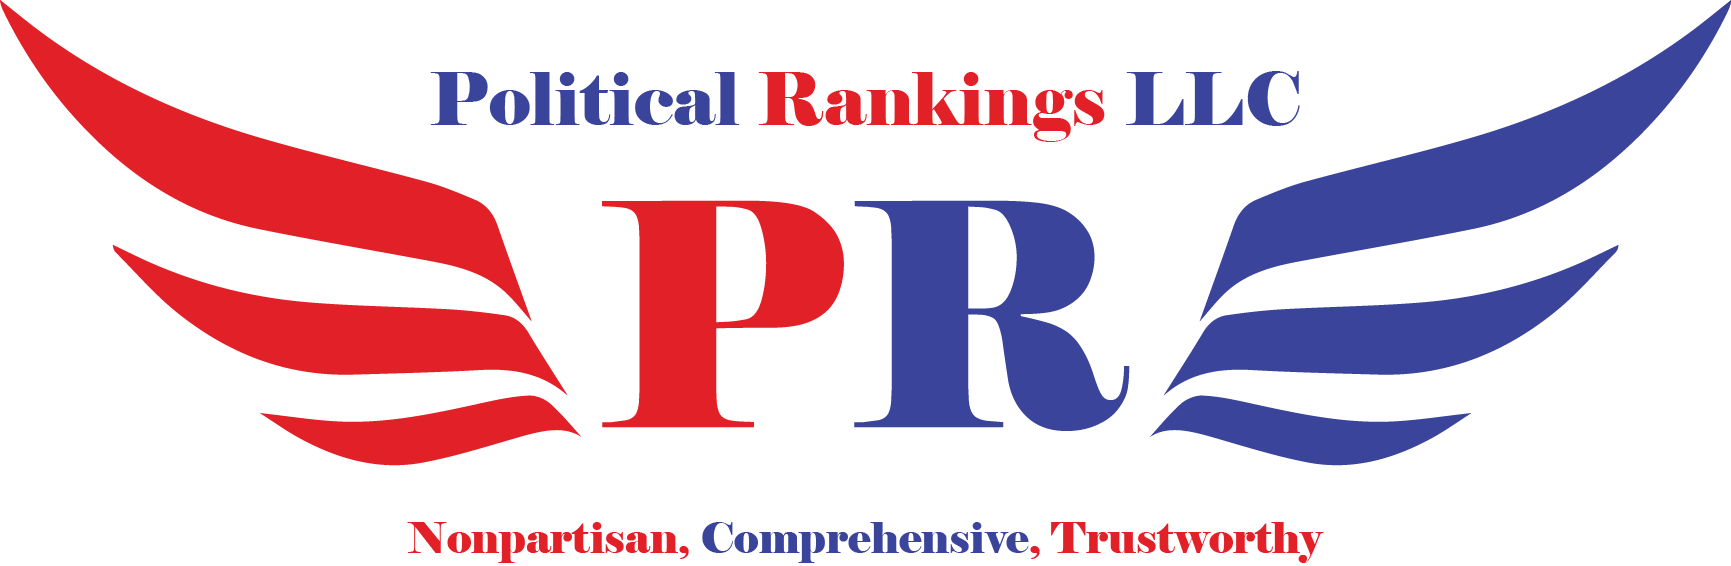 Political Rankings, LLC